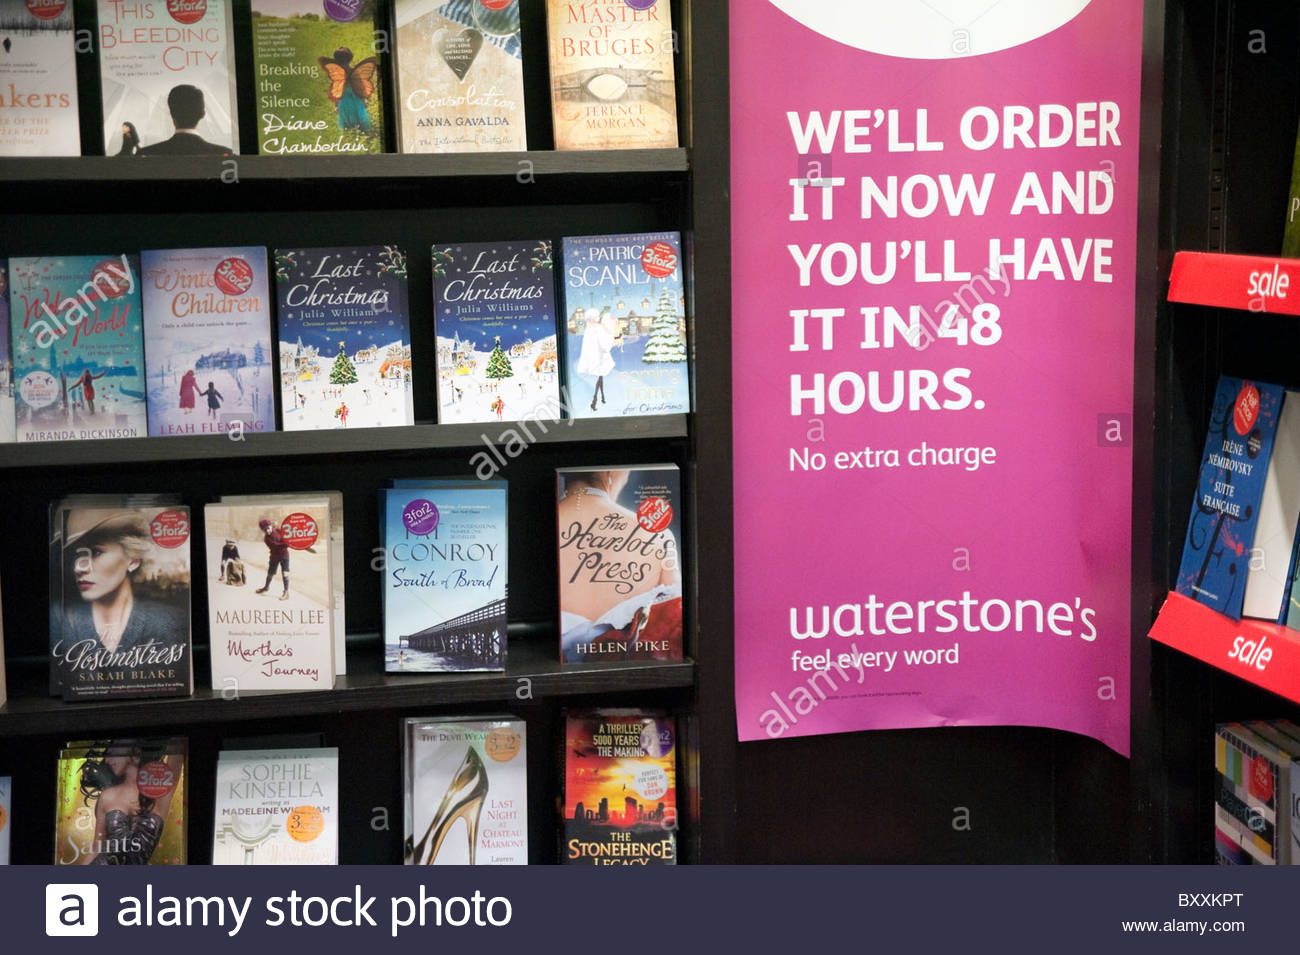 Paperback books for sale inside a Waterstone's bookshop, UK. - Stock Image